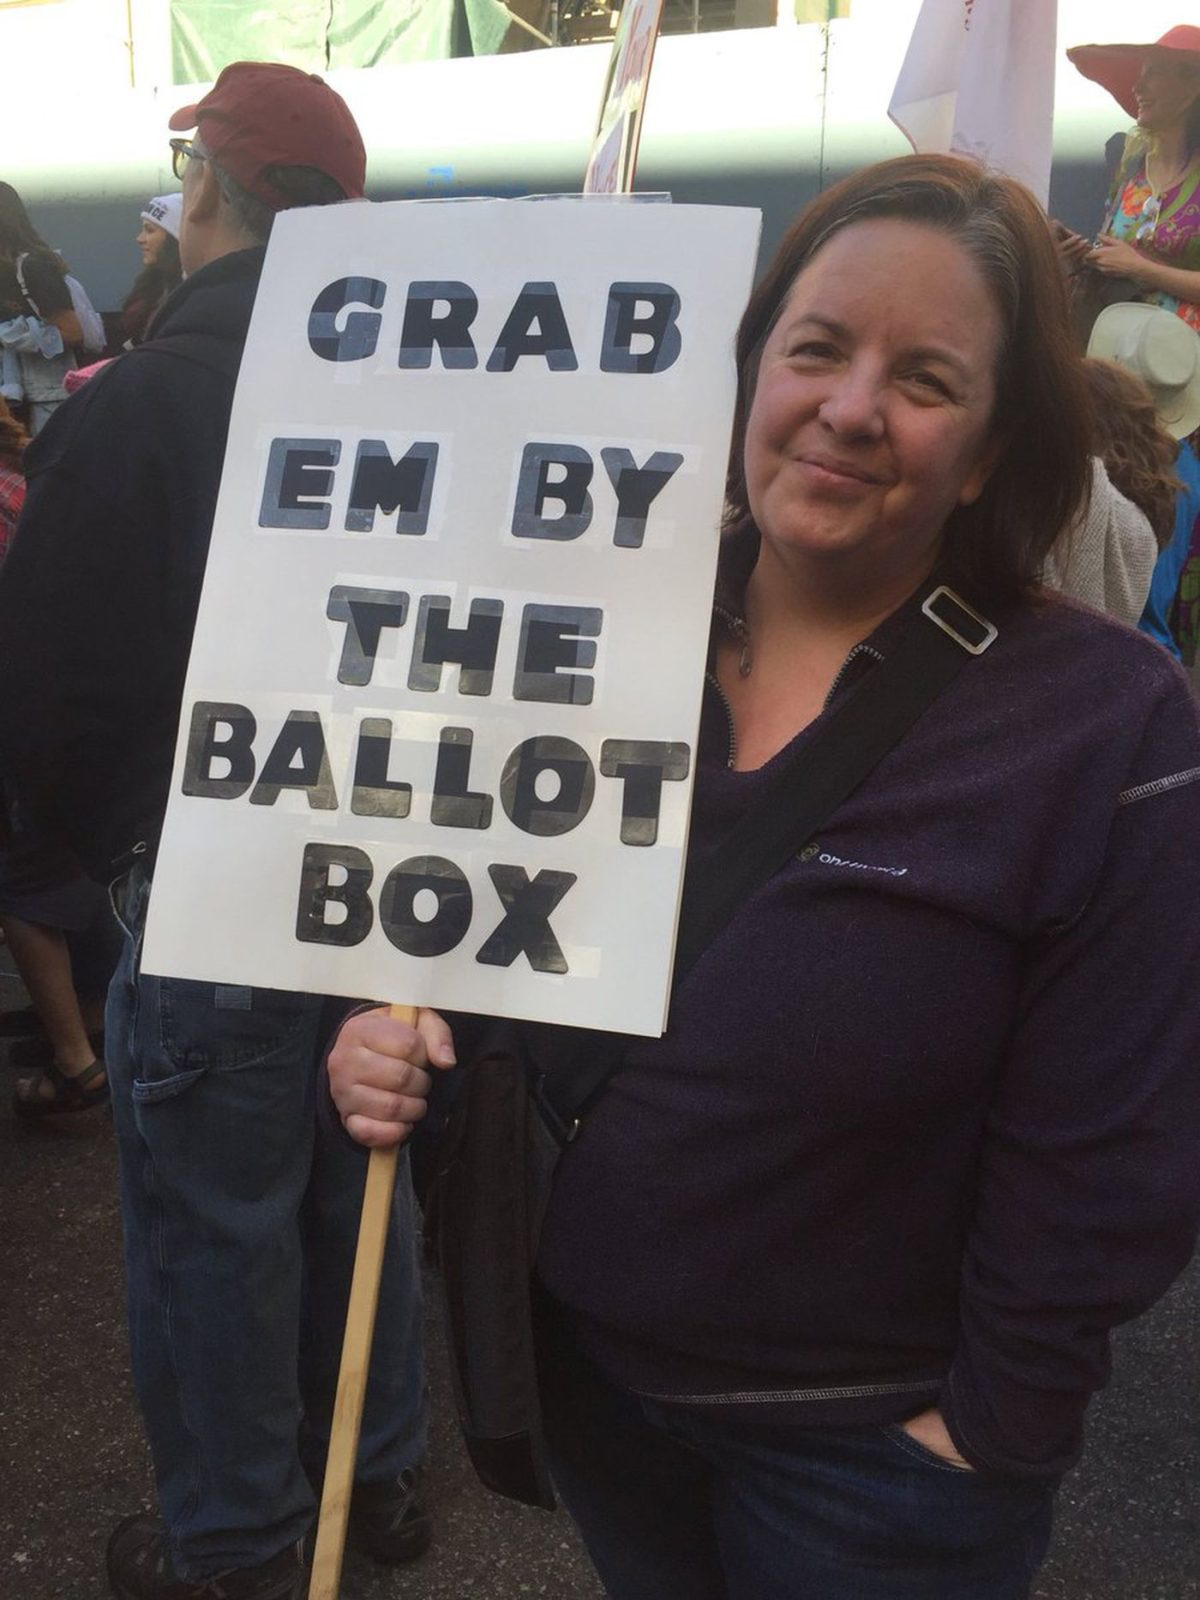 'Grab 'em by the ballot box': Marchers in Los Angeles look ahead to midterm elections